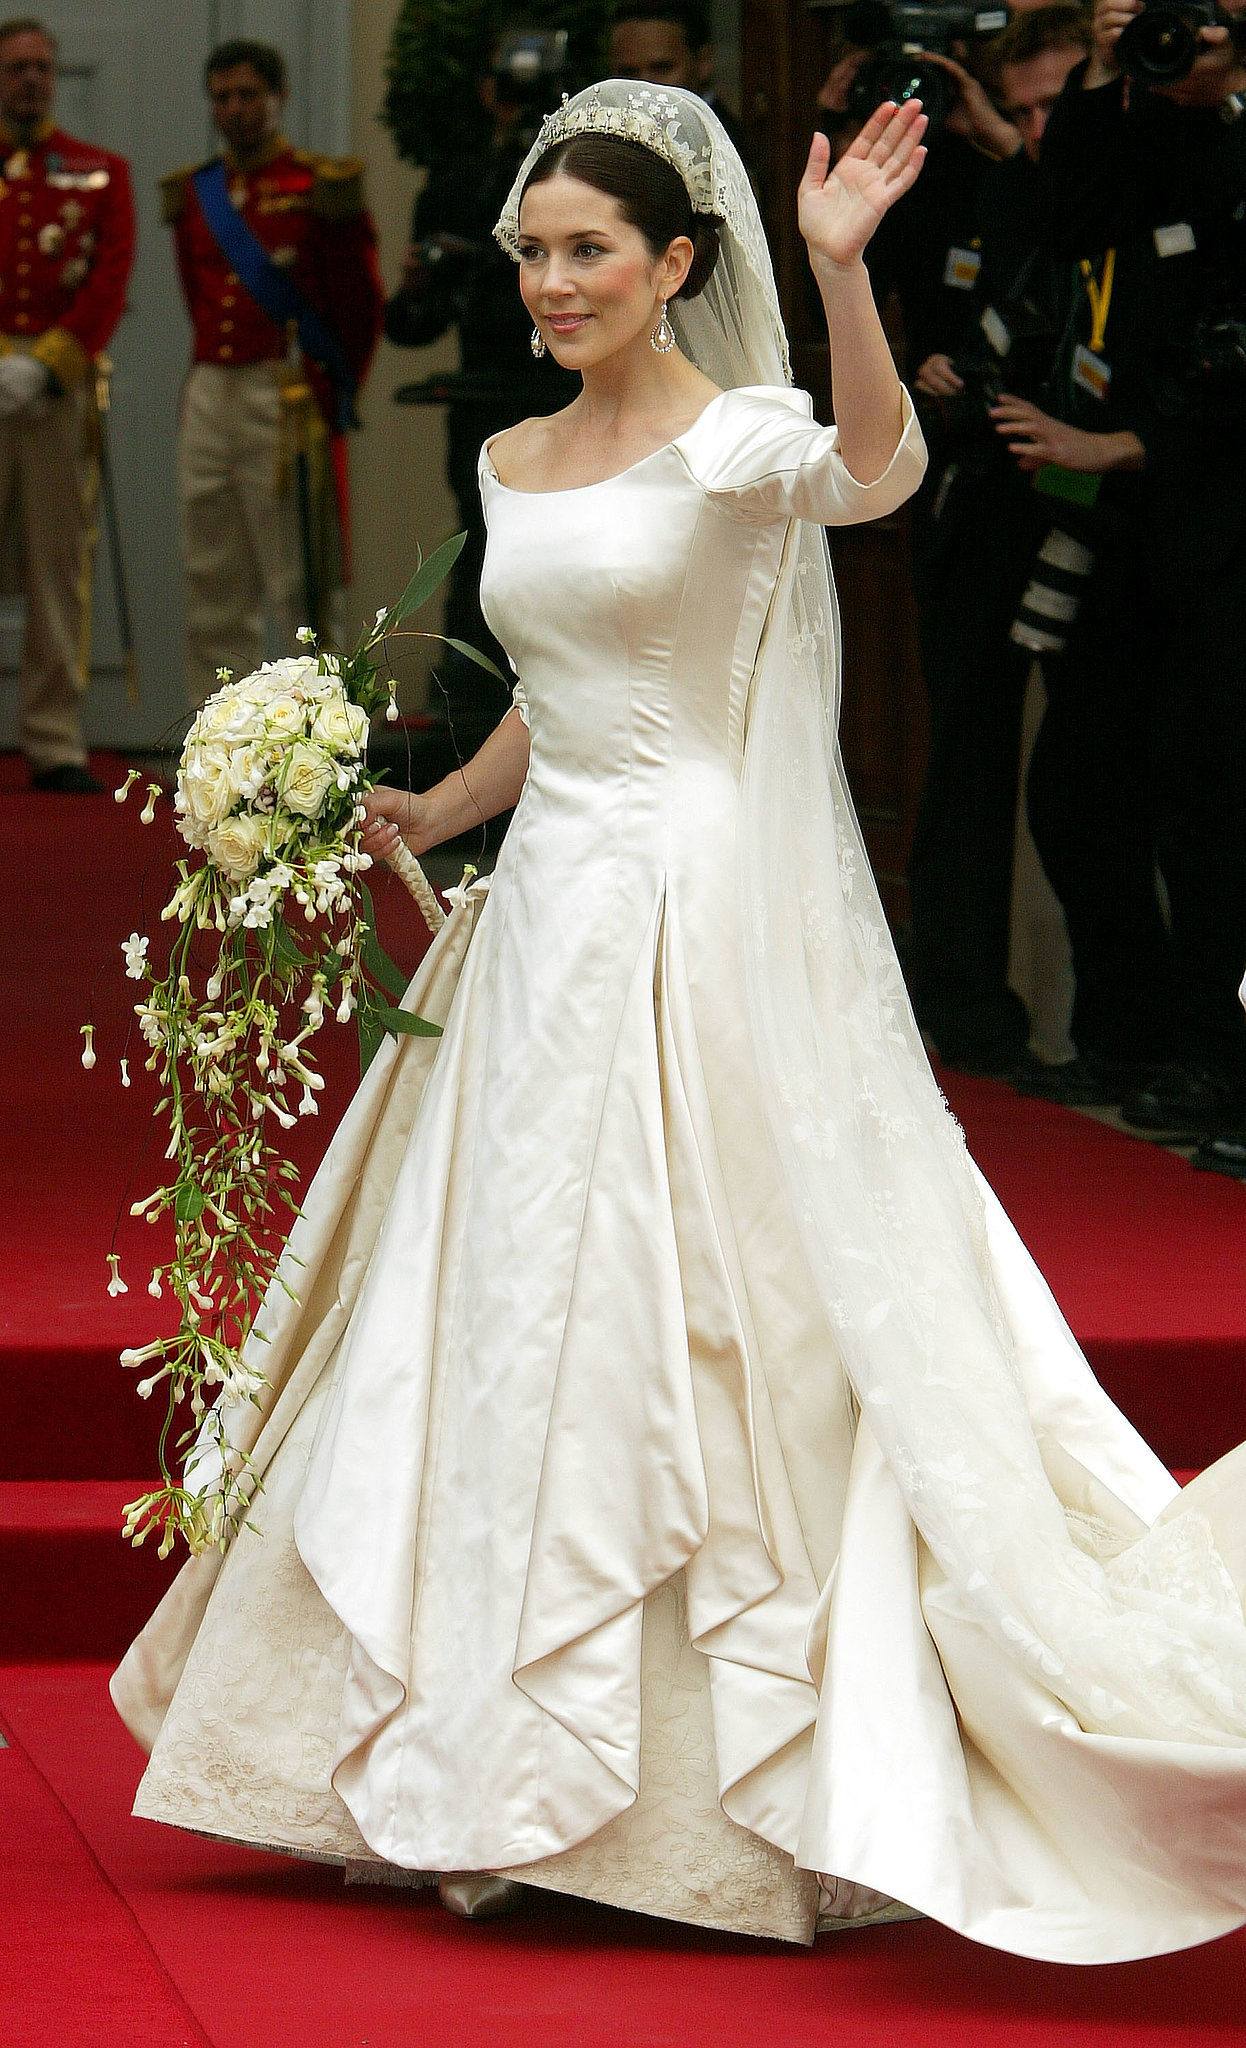 Prince Frederik and Mary Donaldson The Bride Mary